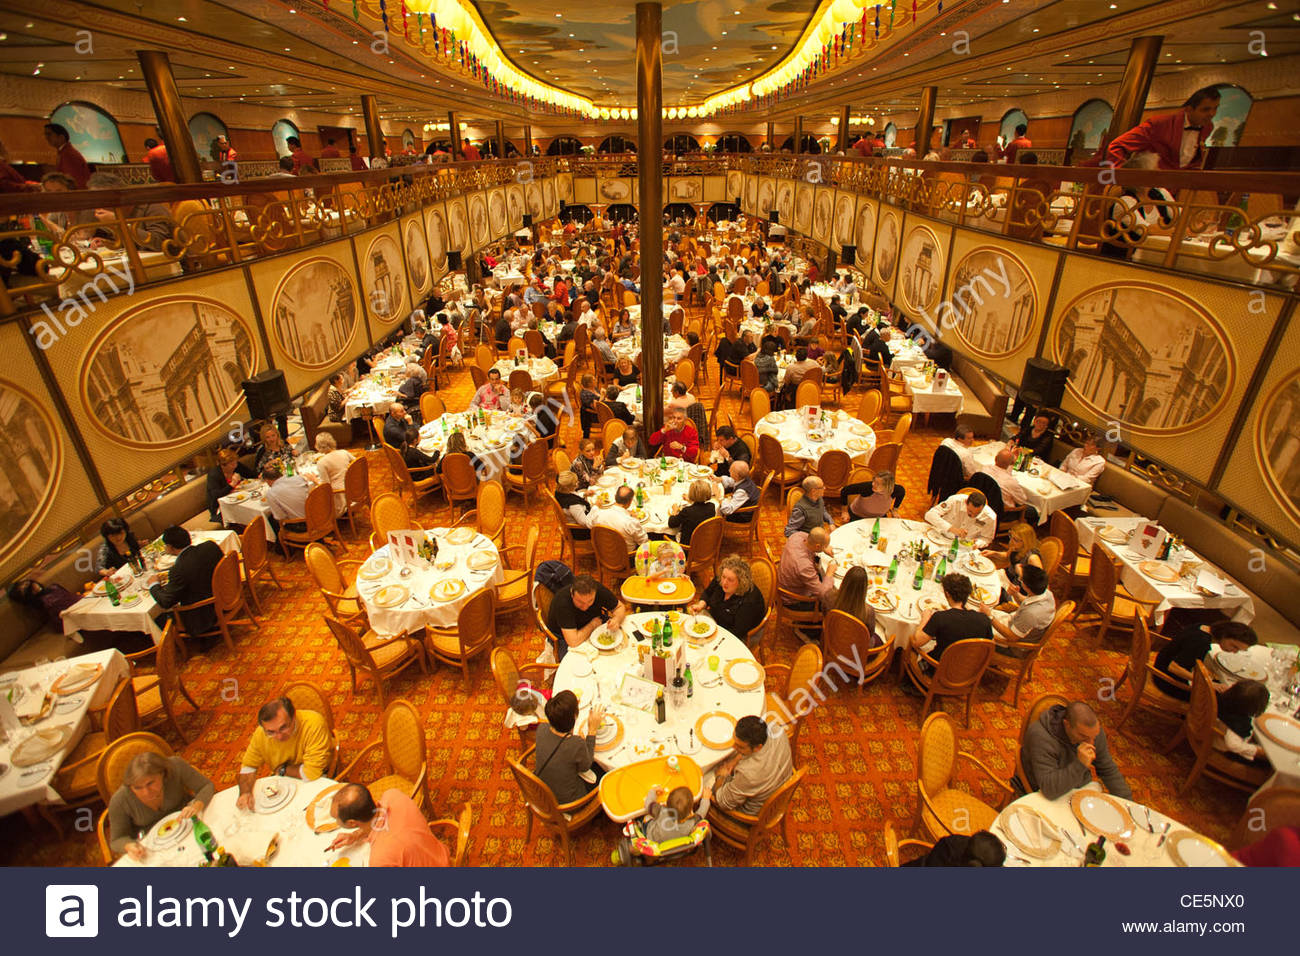 Navigator Of The Seas Dining Room